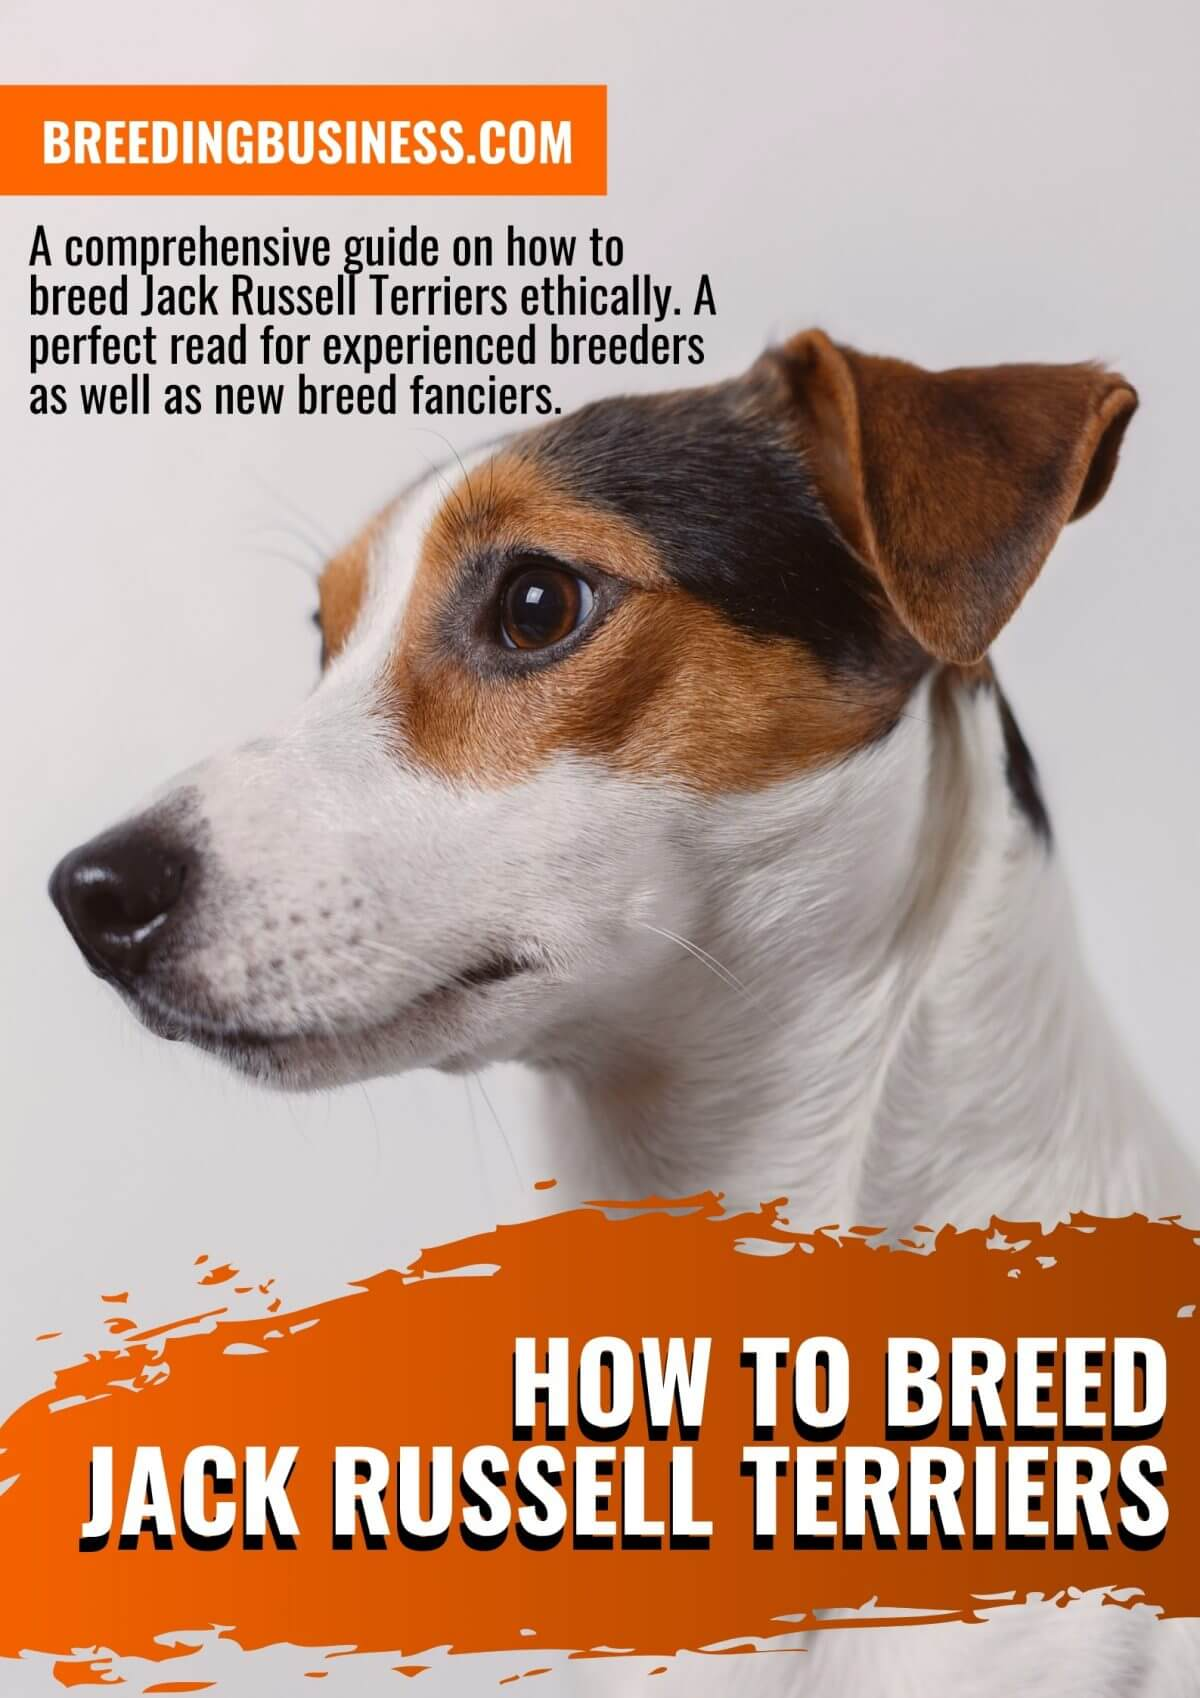 How To Breed Jack Russell Terriers